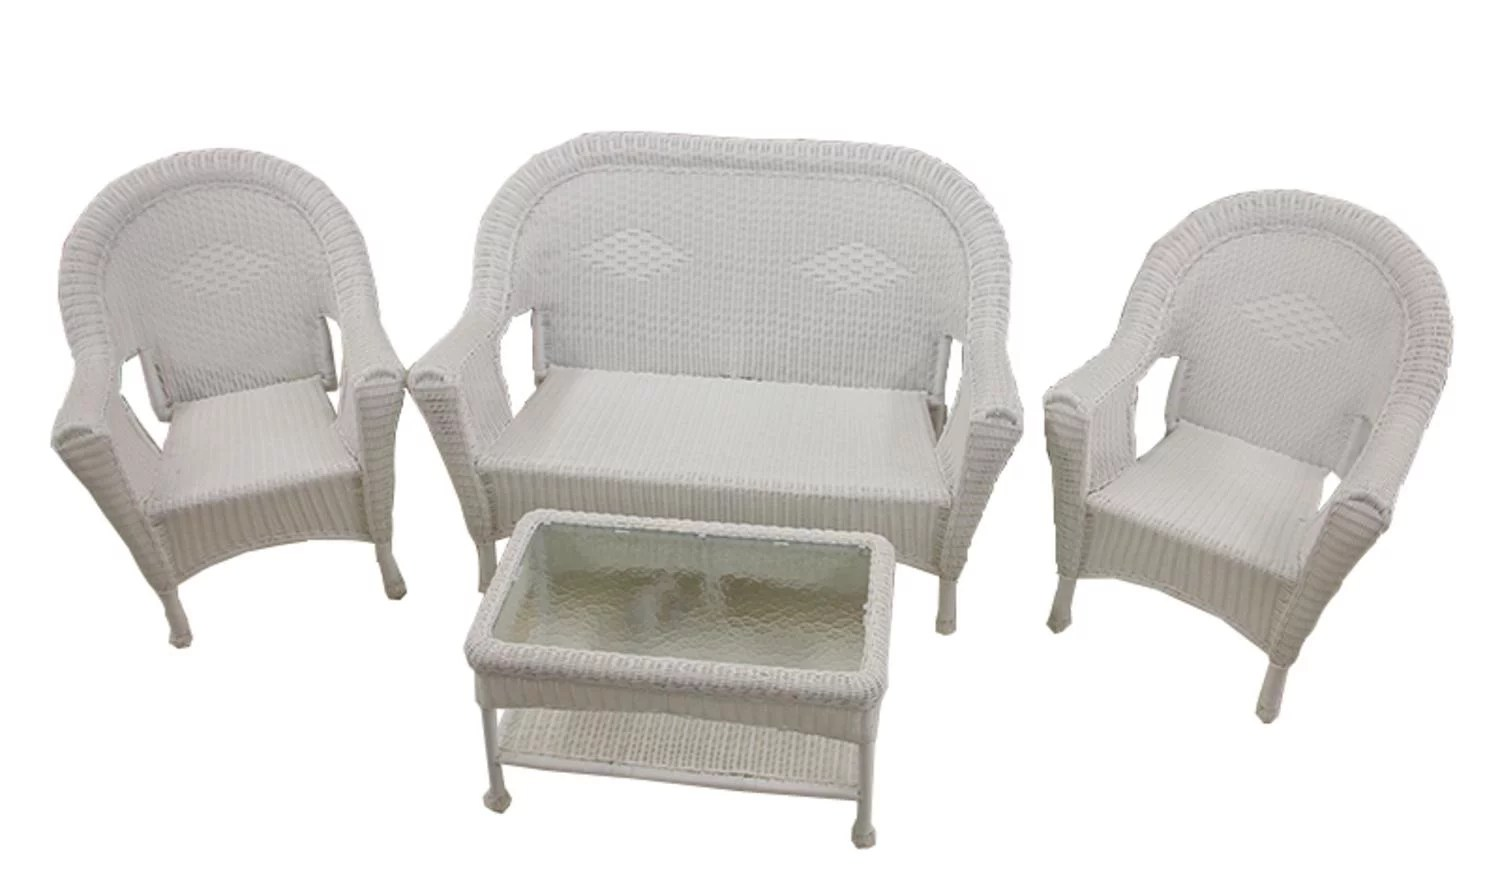 4 piece white resin wicker patio furniture set 2 chairs loveseat table walmart com